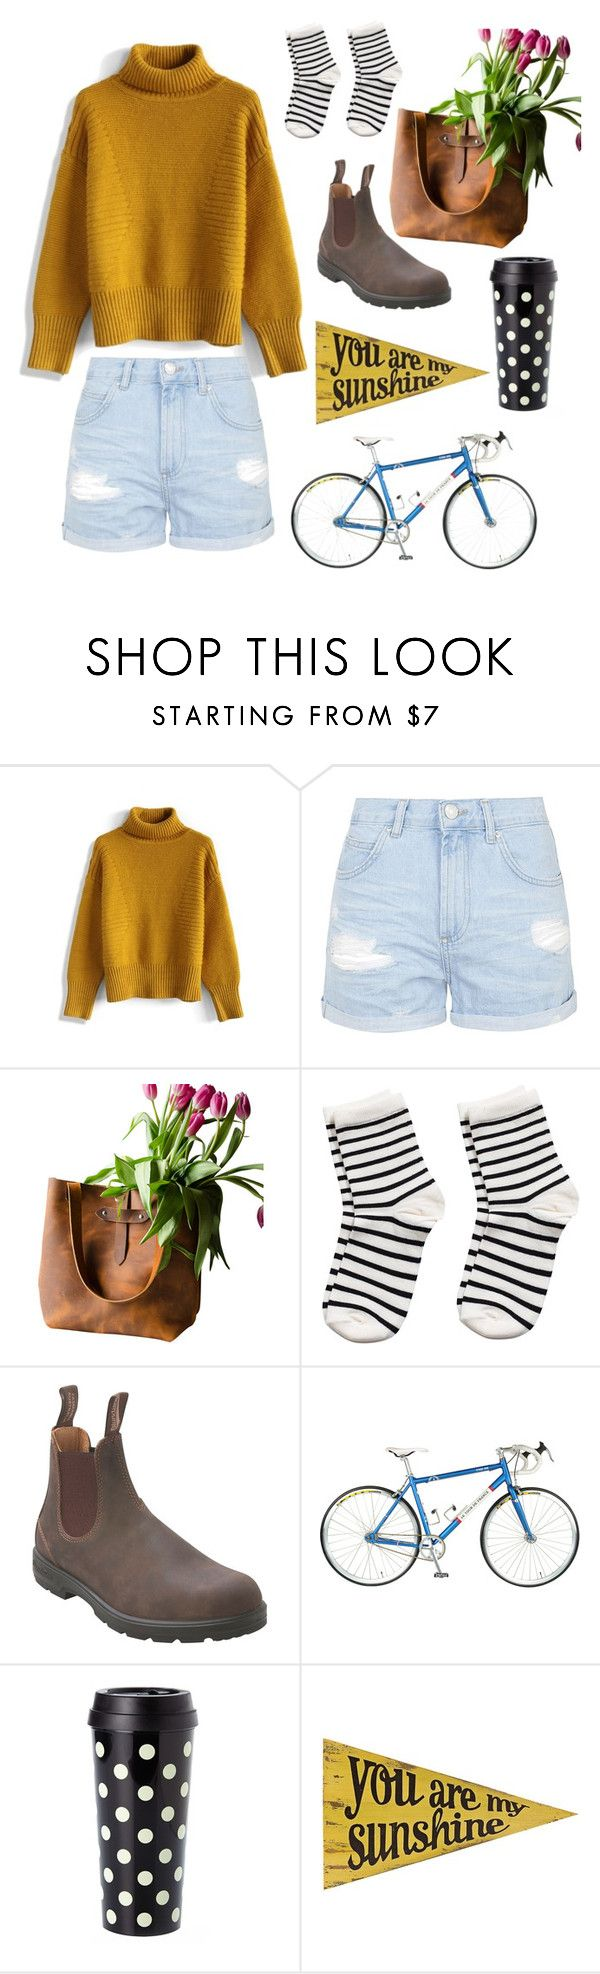 """sunshine"" by sbolger ❤ liked on Polyvore featuring Chicwish, Topshop, Pieces, Blundstone, Kate Spade, Universal Lighting and Decor, women's clothing, women's fashion, women and female"